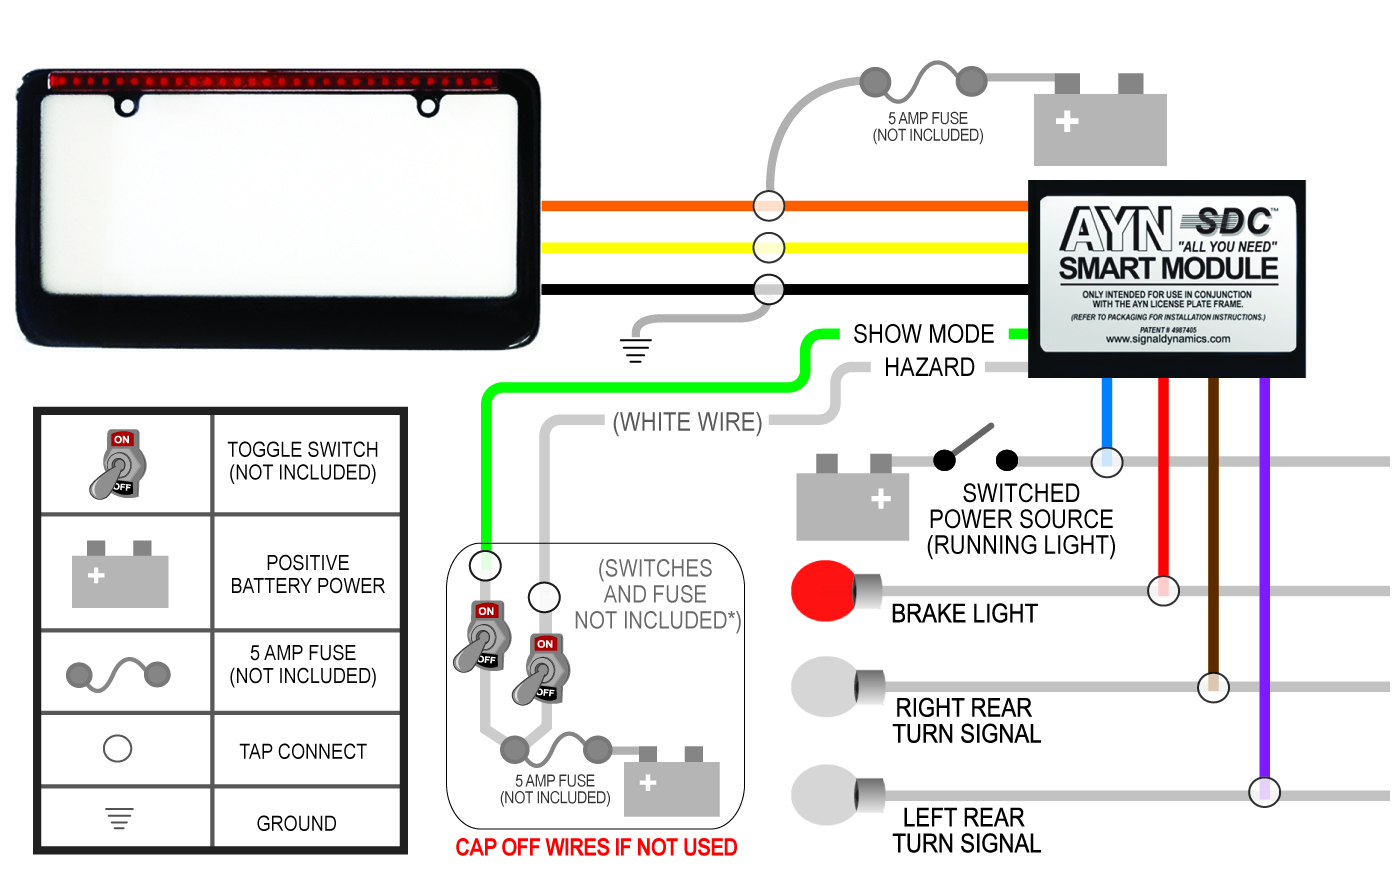 black auto wiring diagram?t=1399476781 black ayn automotive license plate frame & smart module combo Basic Turn Signal Wiring Diagram at panicattacktreatment.co